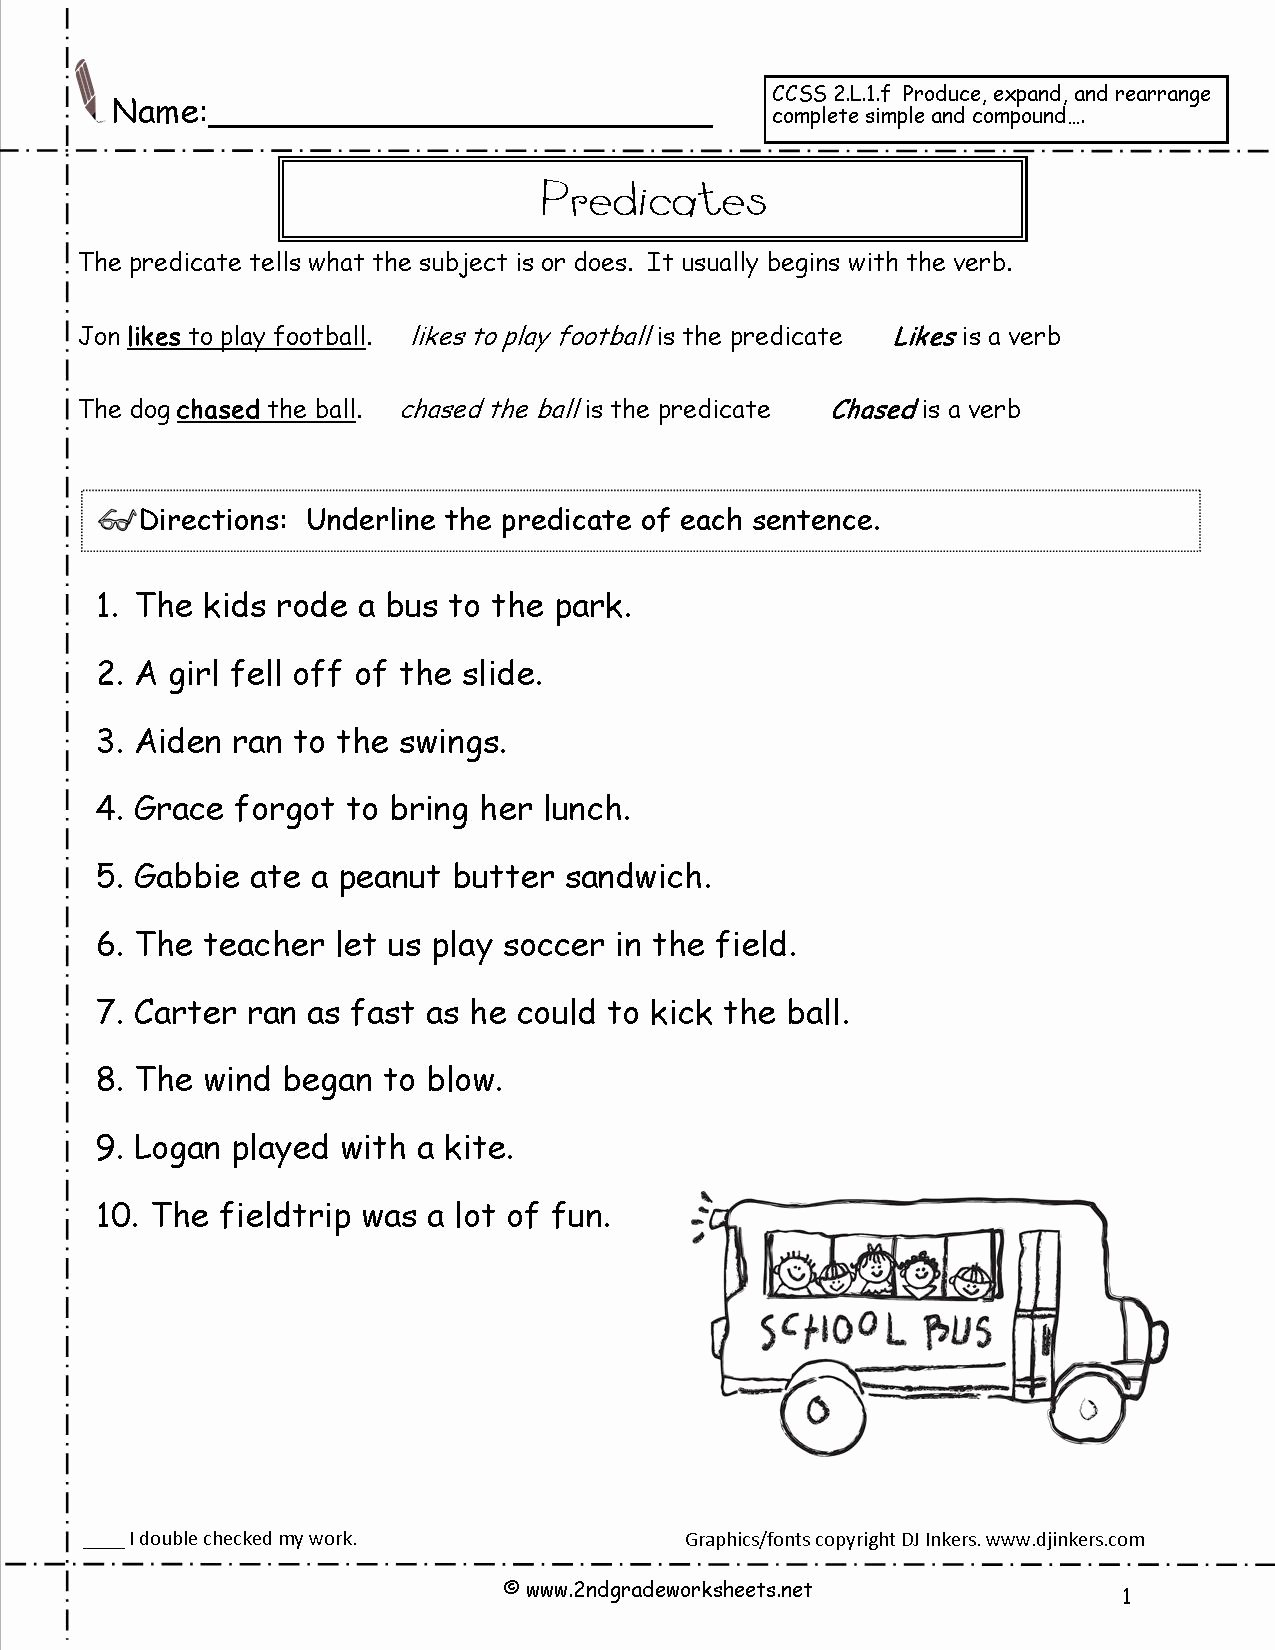 Subjects and Predicates Worksheet Awesome Sentences Worksheets From the Teacher S Guide